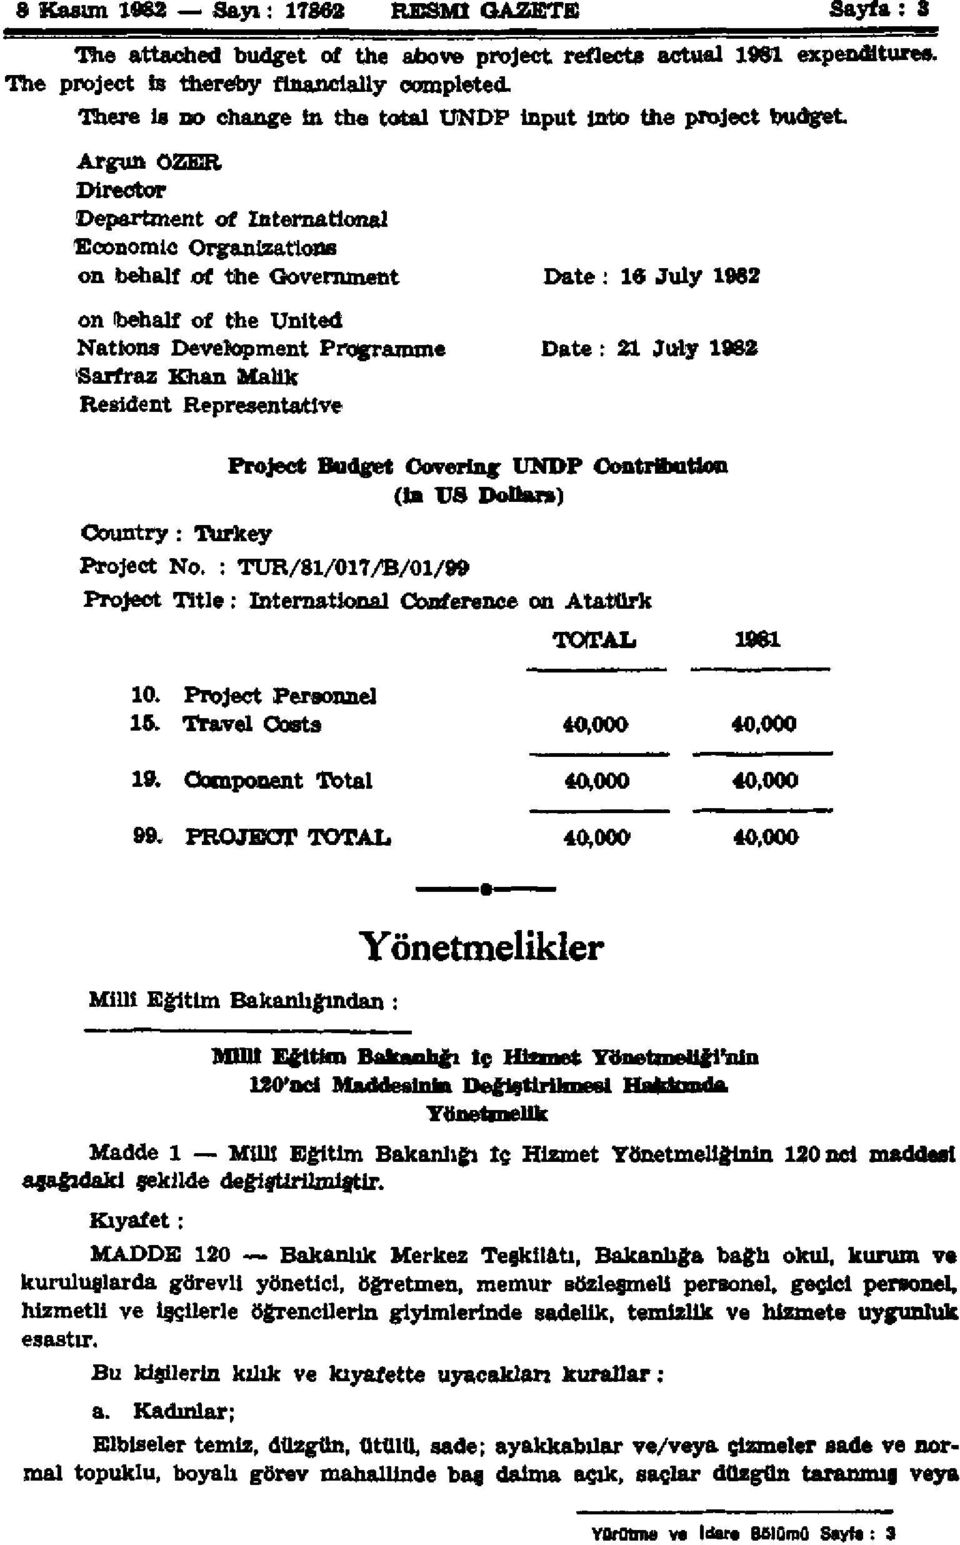 the United Nations Development Programme Date: 21 July 1982 Sarfraz Khan Malik Resident Representative Project Budget Covering UNDP Contribution (In US Dollars) Country: Turkey Project No.